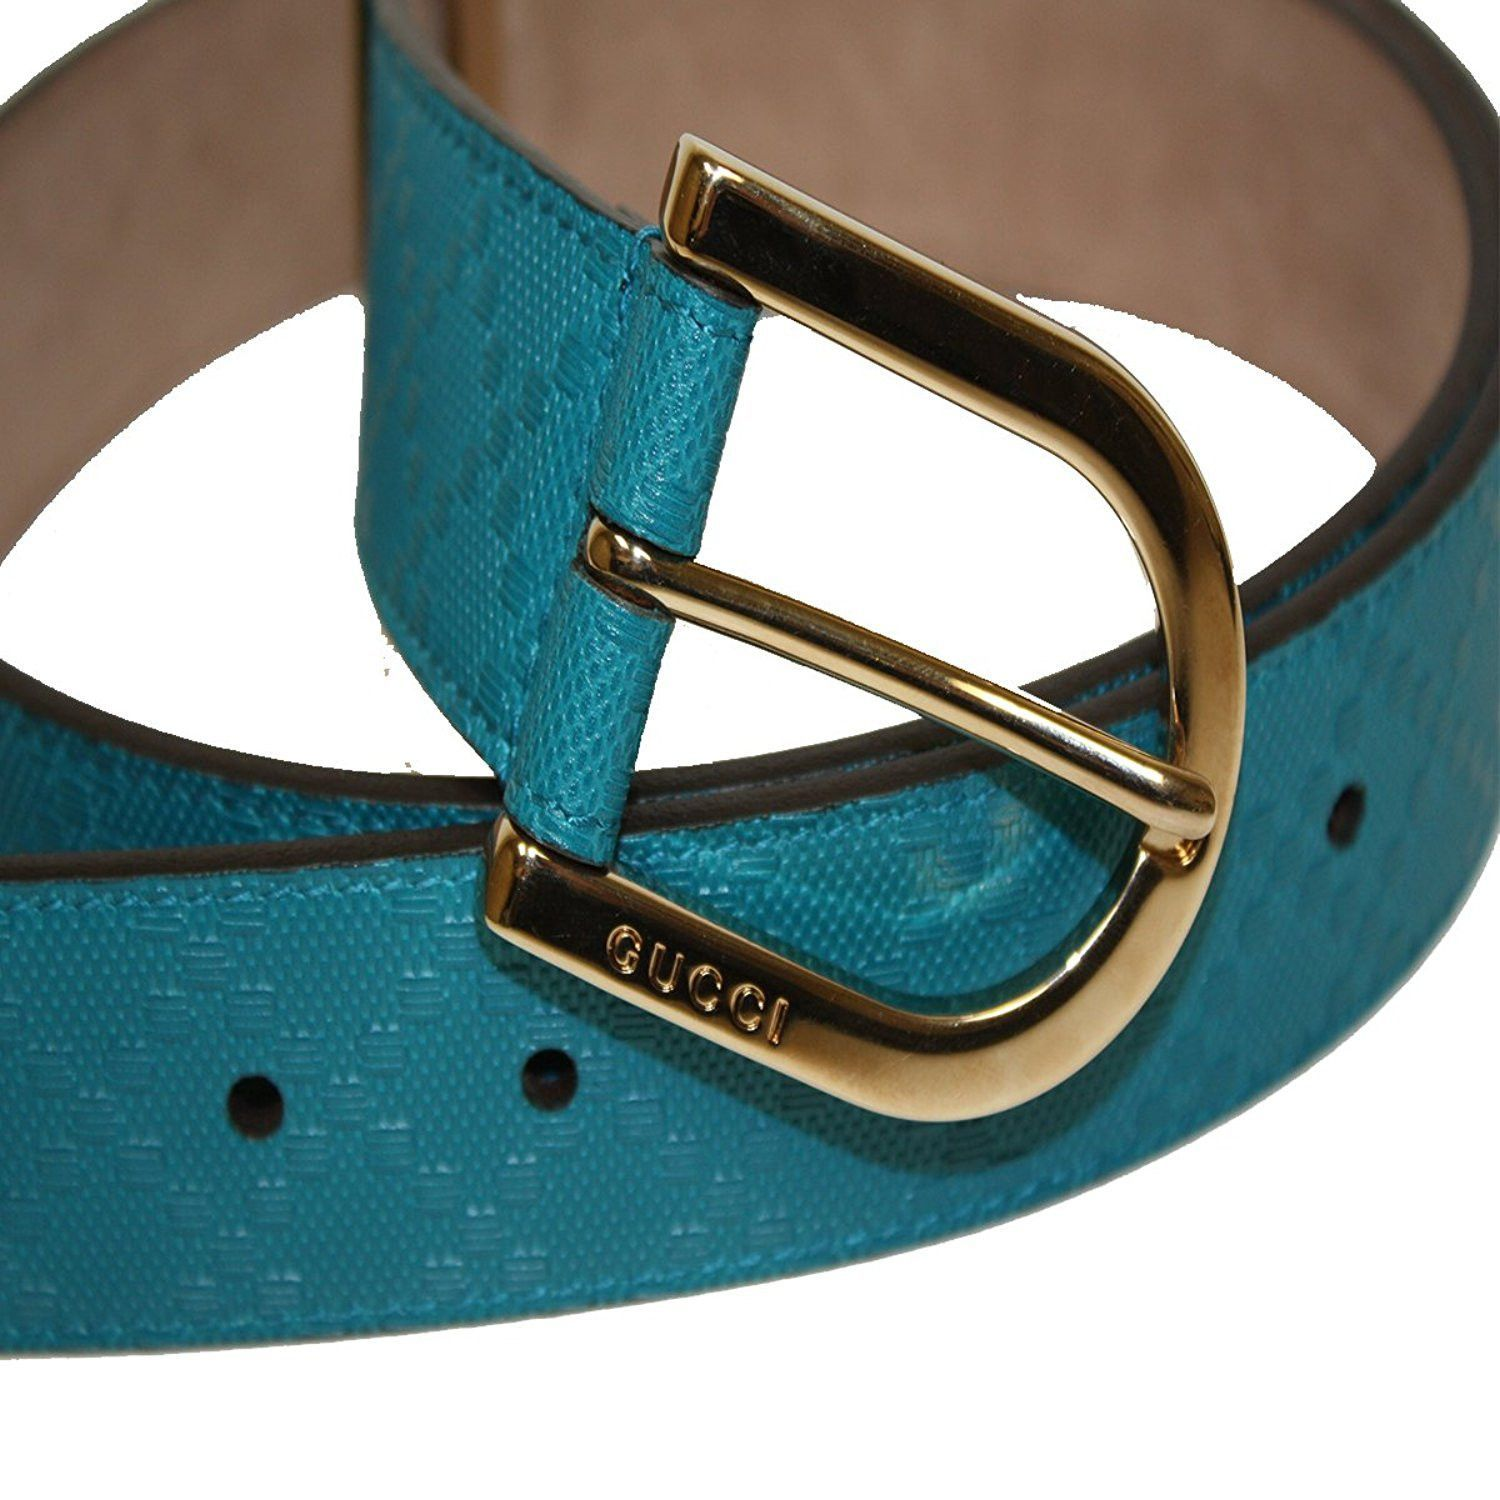 a435a293a9a52 Gucci Women s Diamante Leather Belt 354382 Bright Turquoise Blue